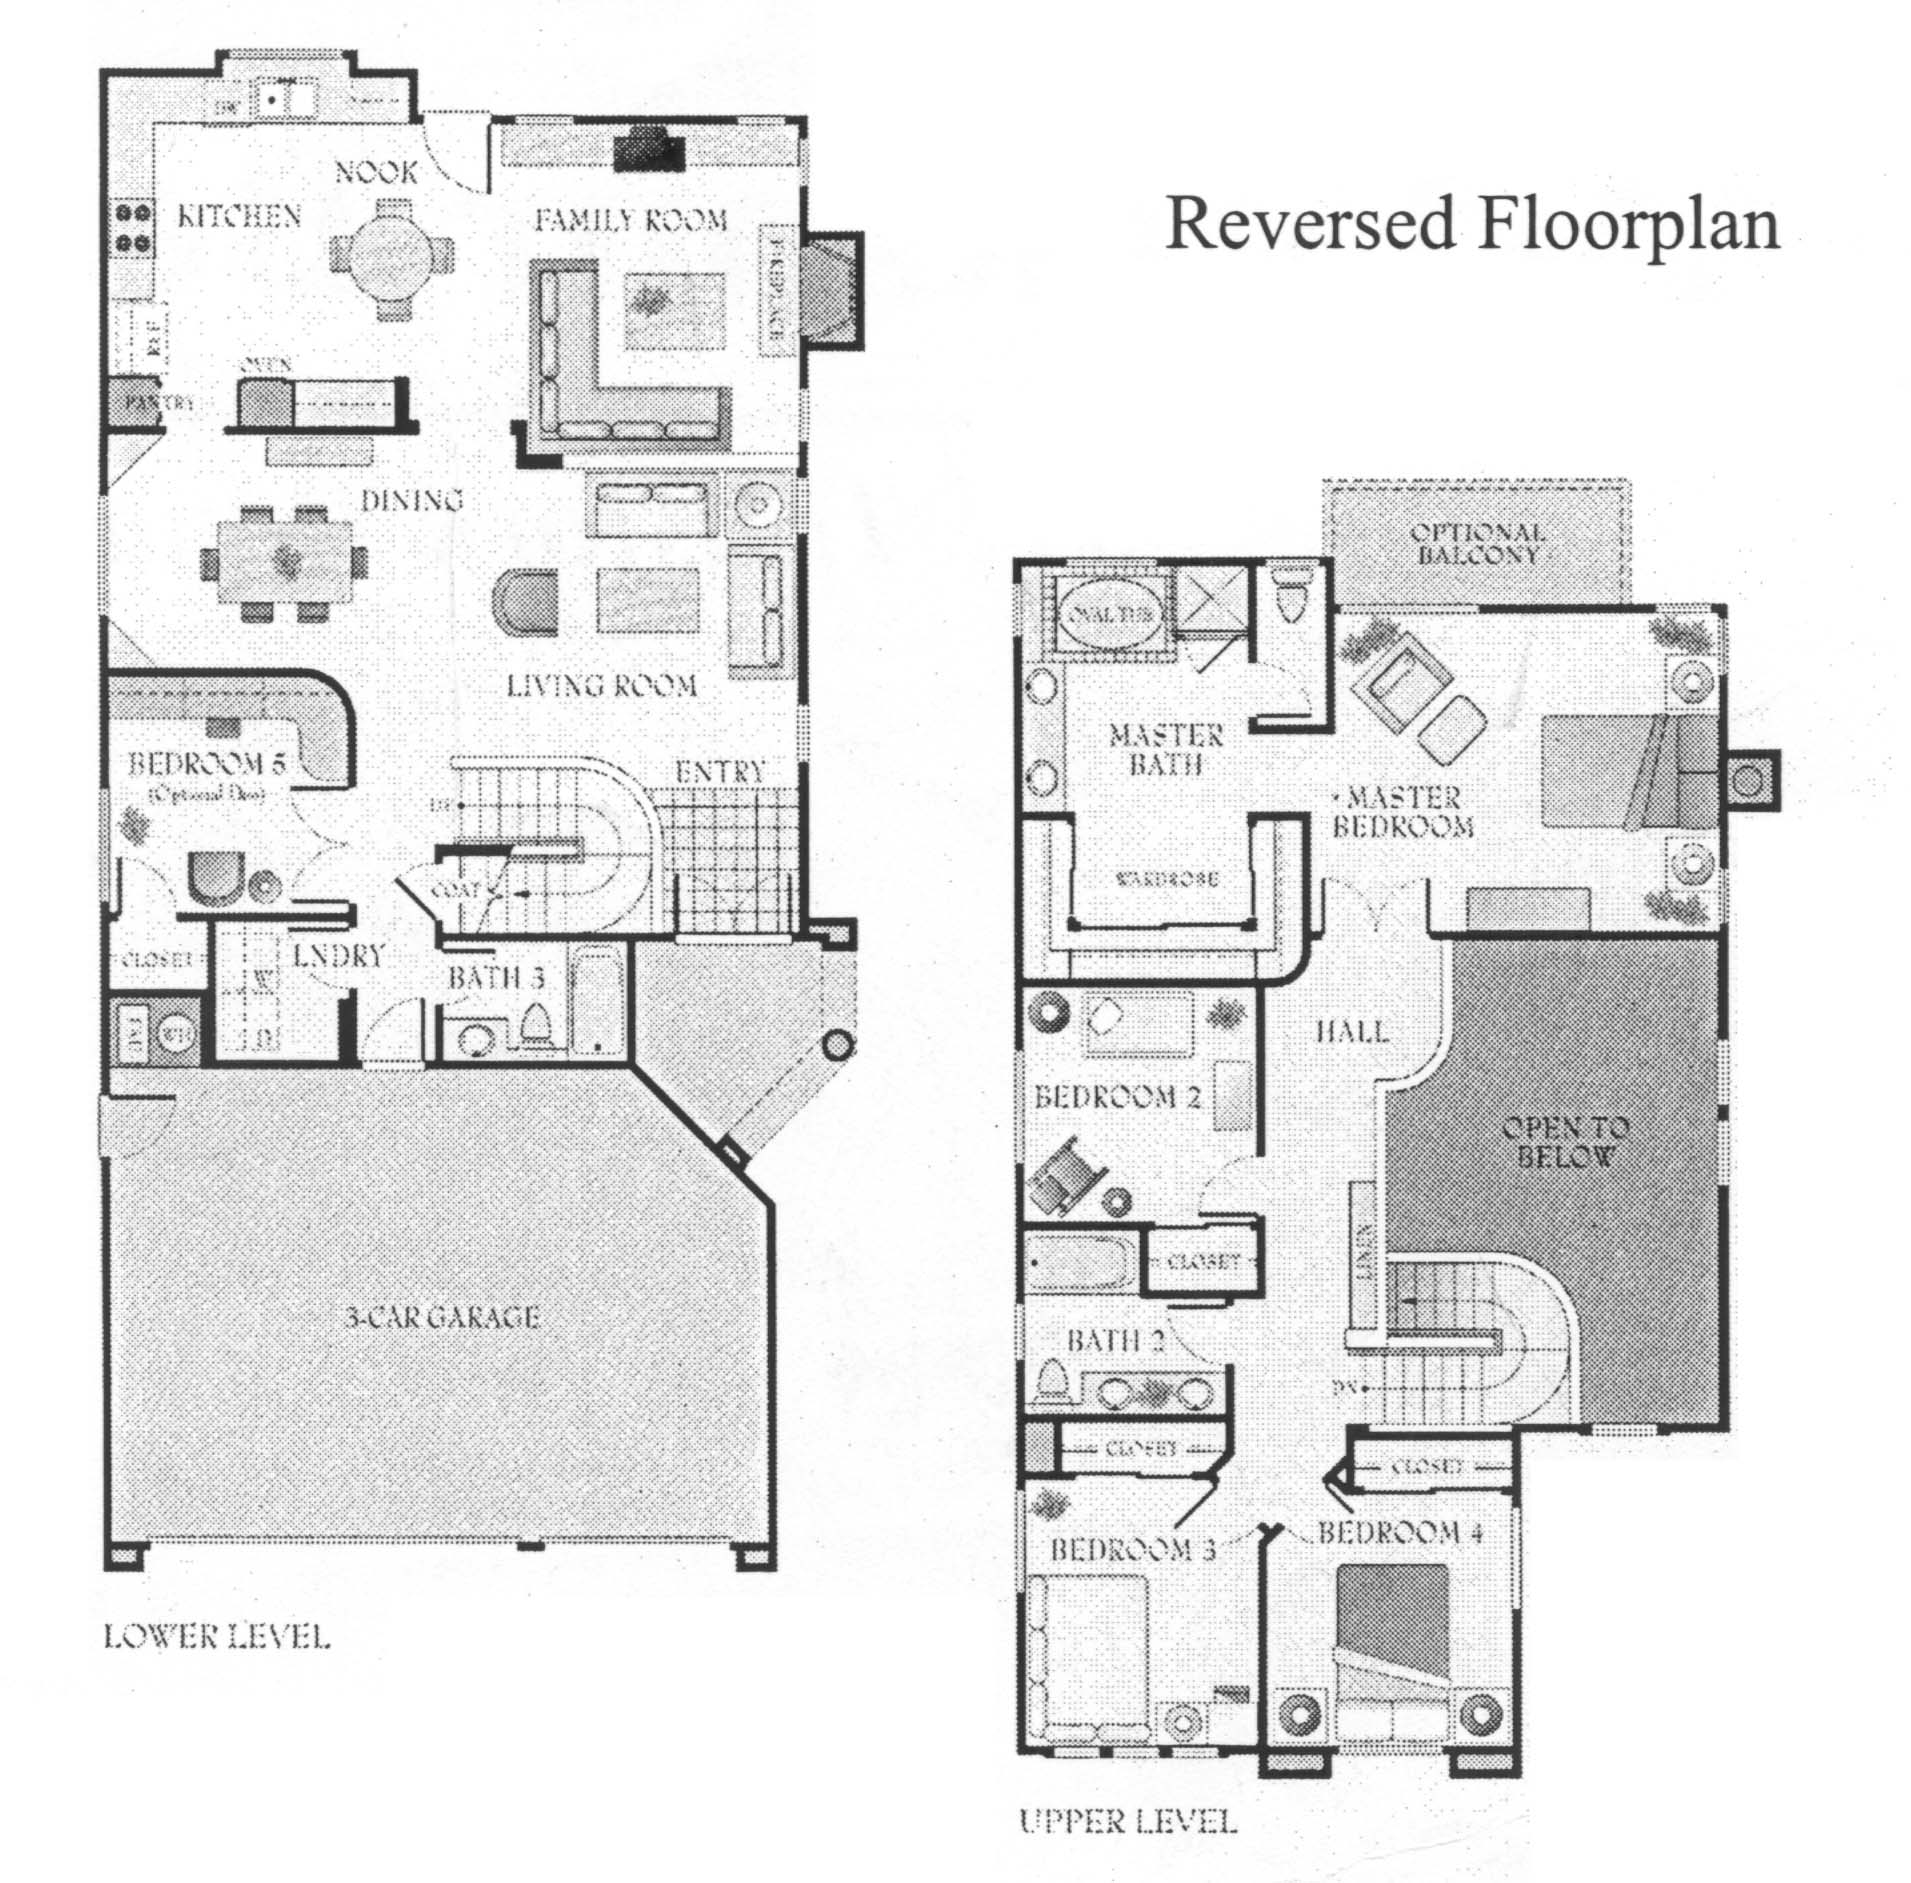 Master bath floor plans best layout room - Plan floor design ...